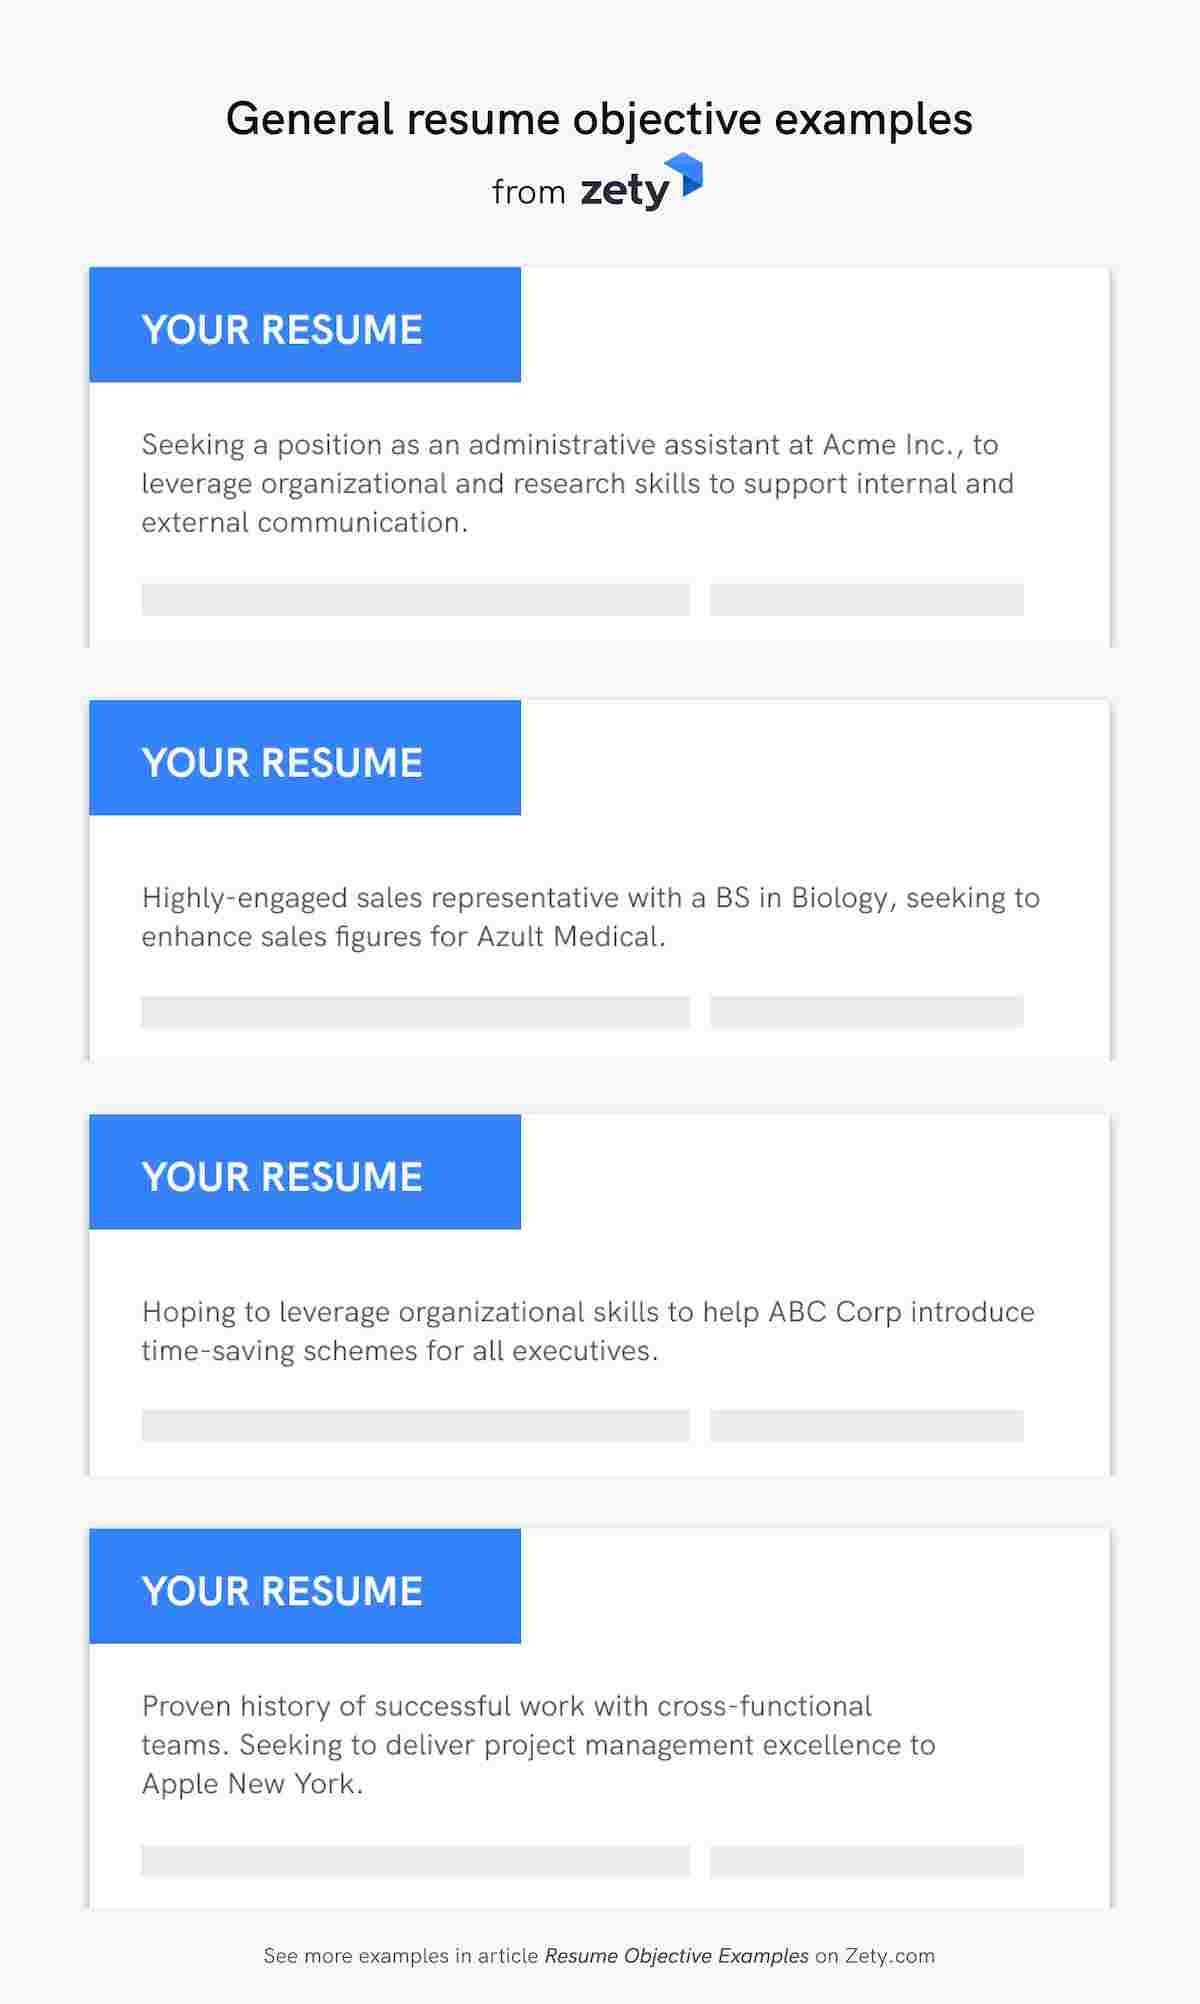 resume objective examples career objectives for all jobs an example of general headline Resume An Example Of Resume Objective